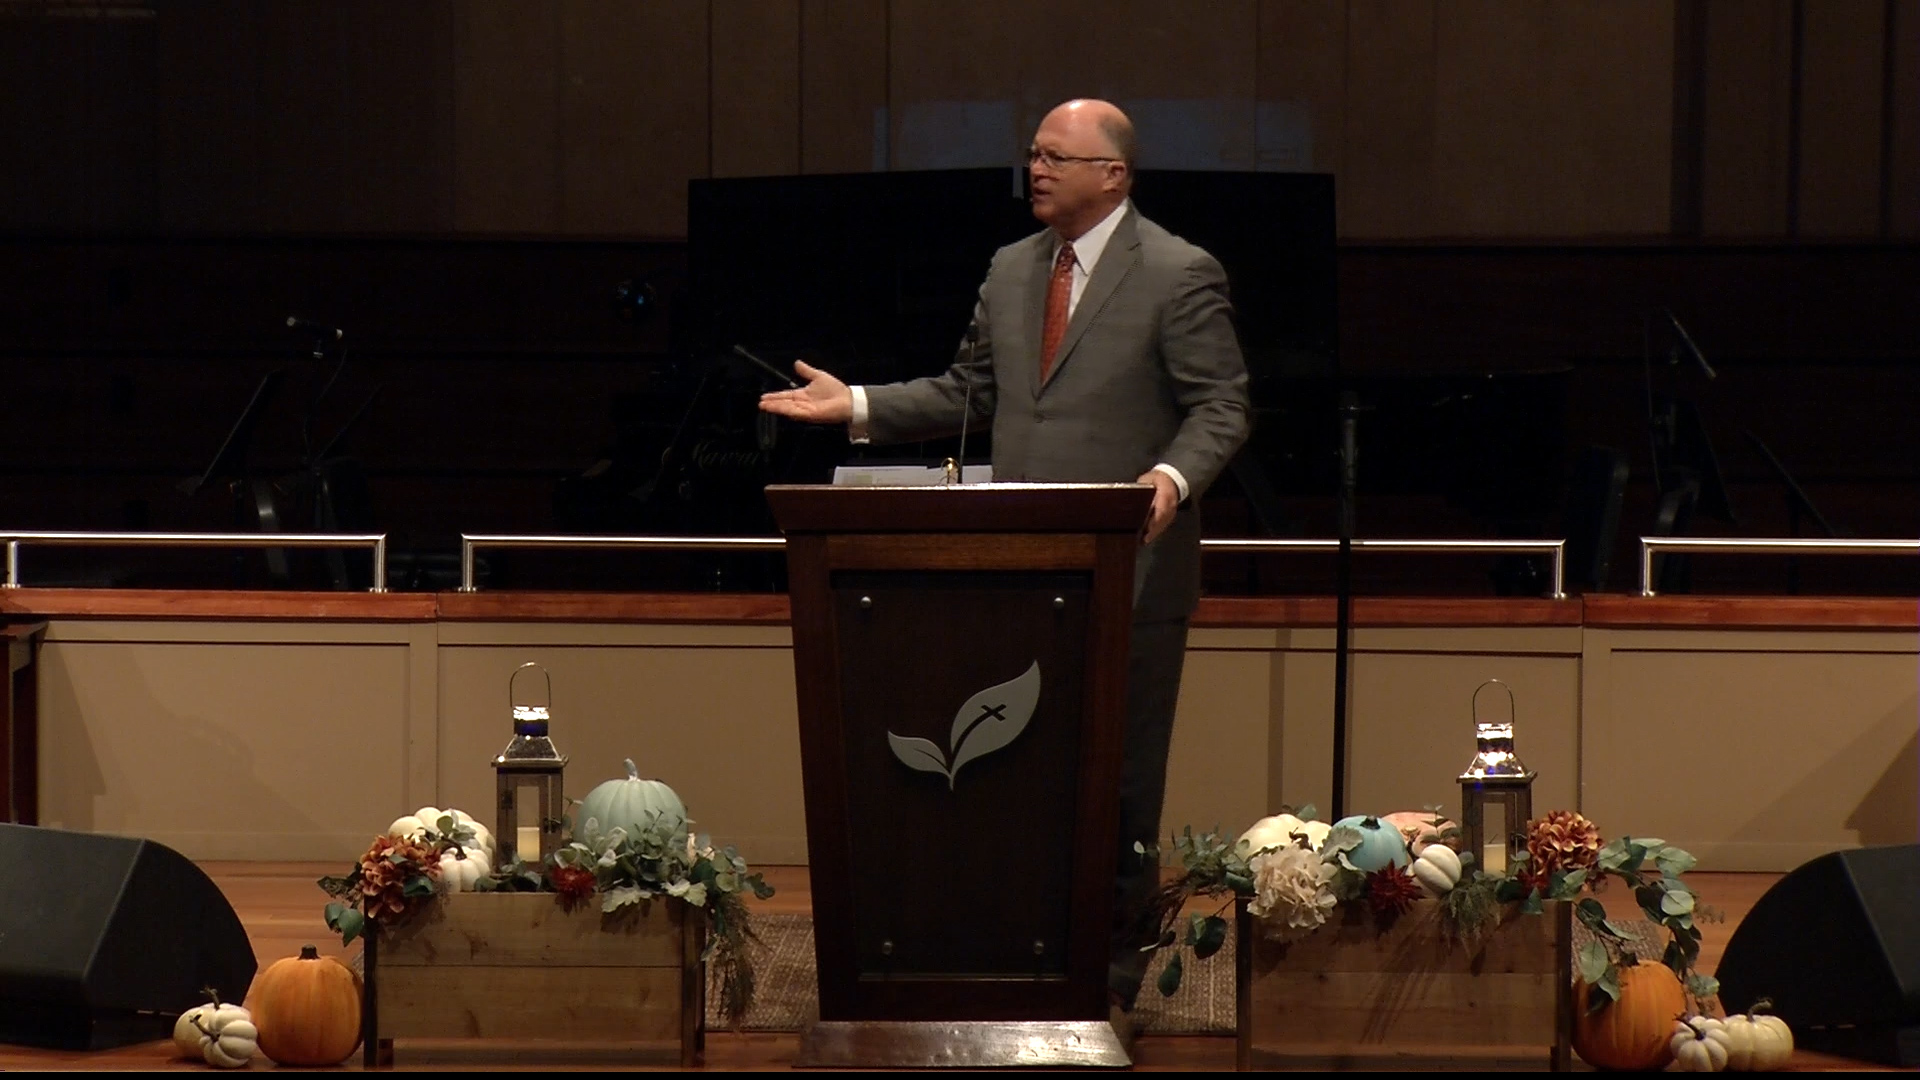 Pastor Paul Chappell: Minister One to Another